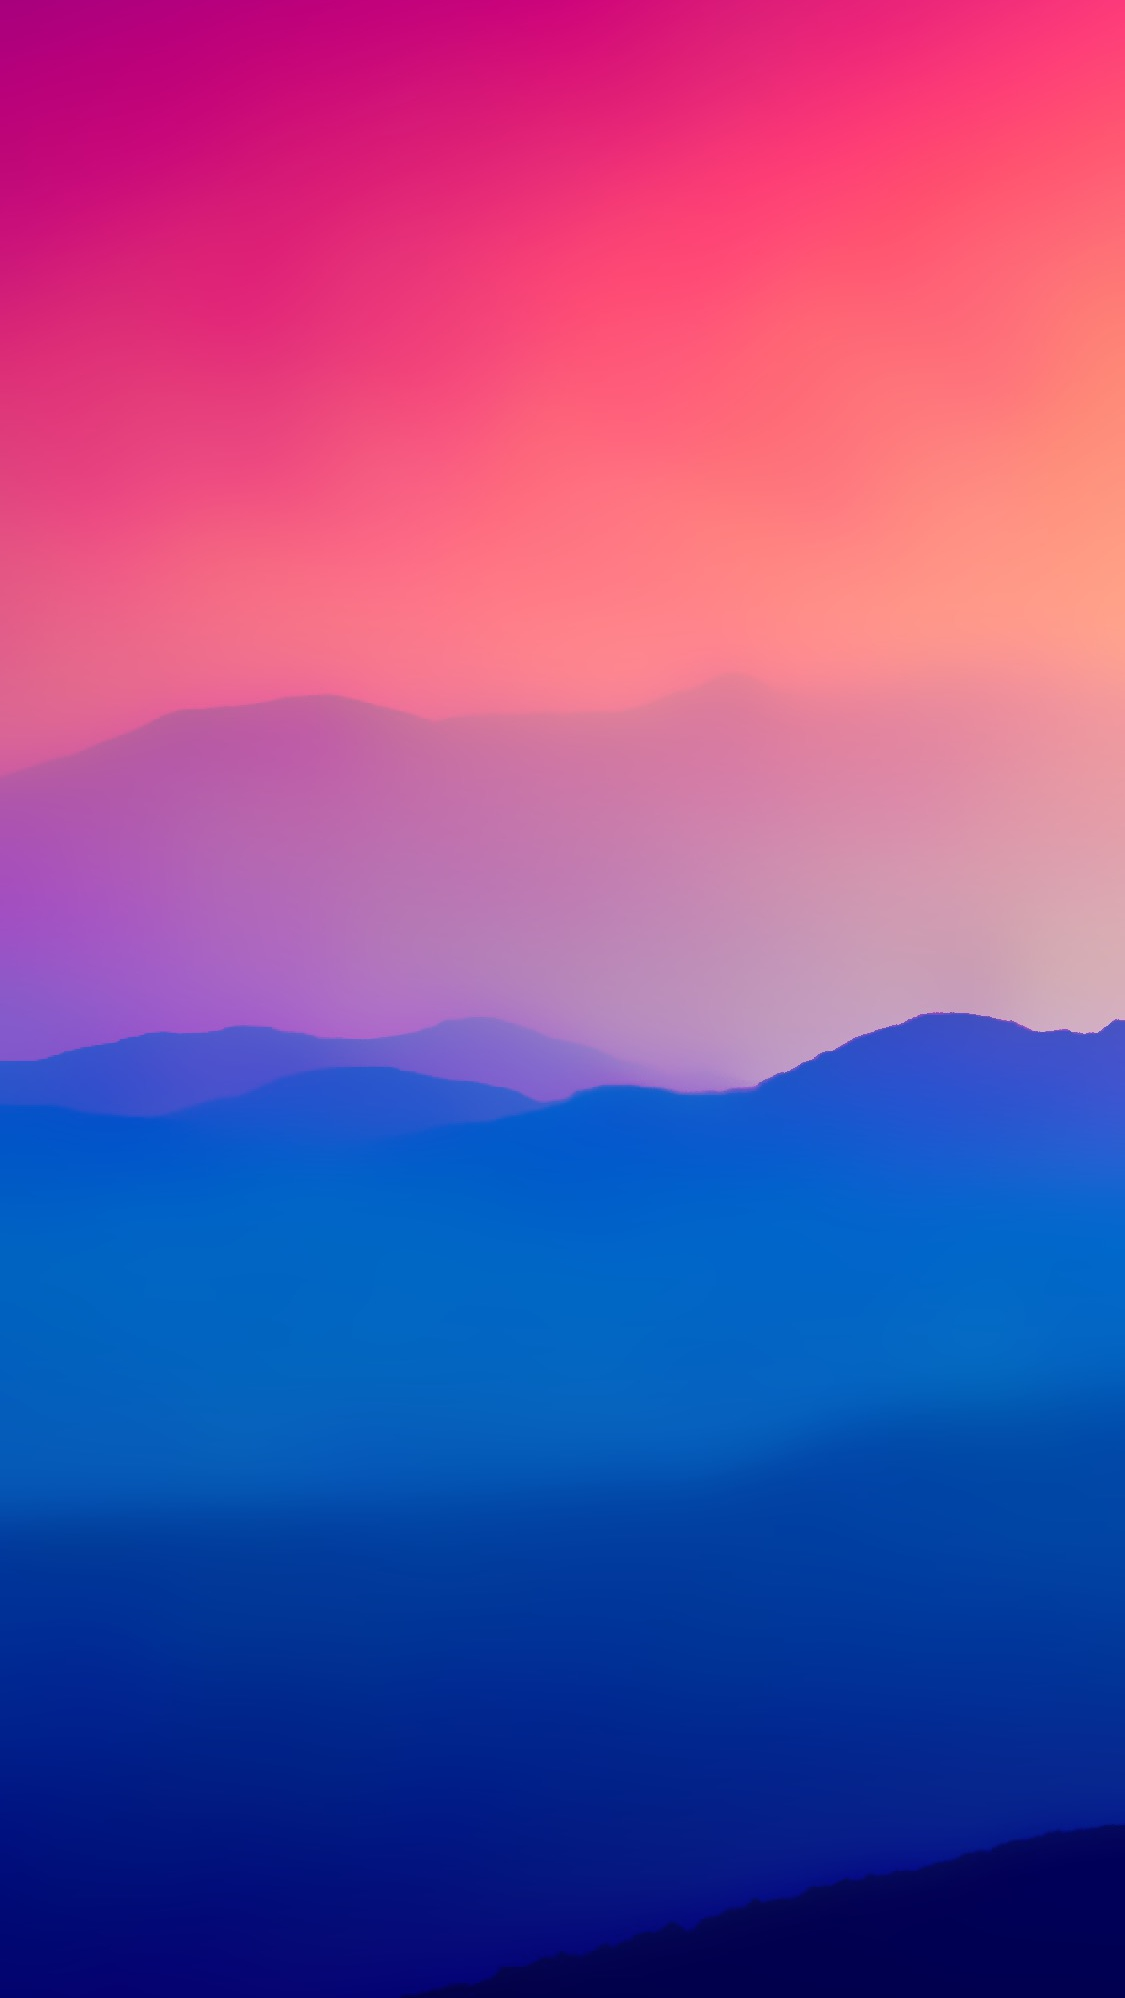 House Quotes Iphone Wallpaper Mist Mountains Colorful Iphone Wallpaper Iphoneswallpapers